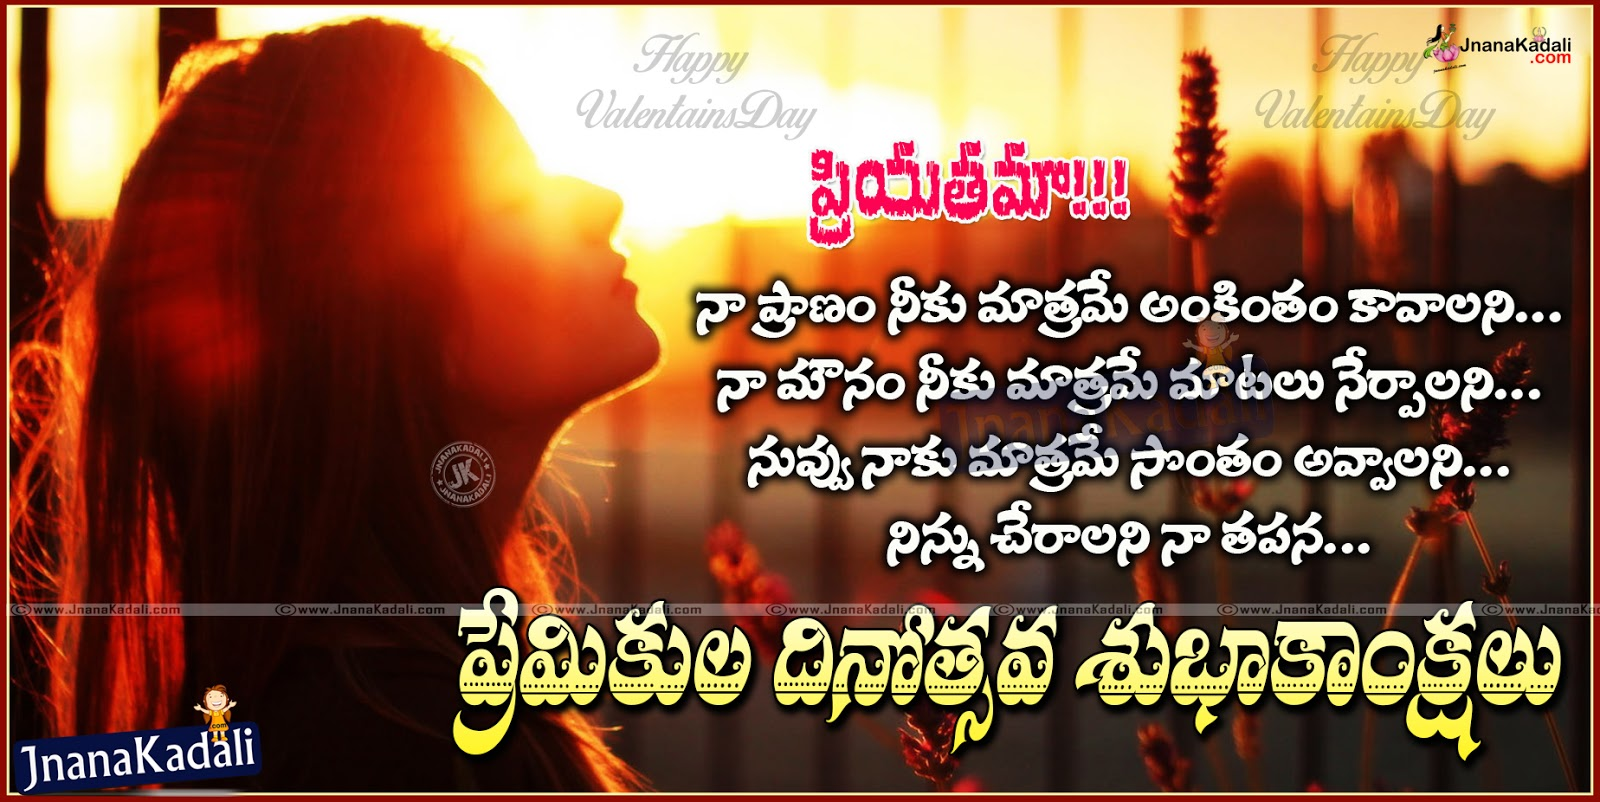 valentines day quotes for girlfriend in telugu - Cool Valentines Day wishes quotes kavithalu in telugu with